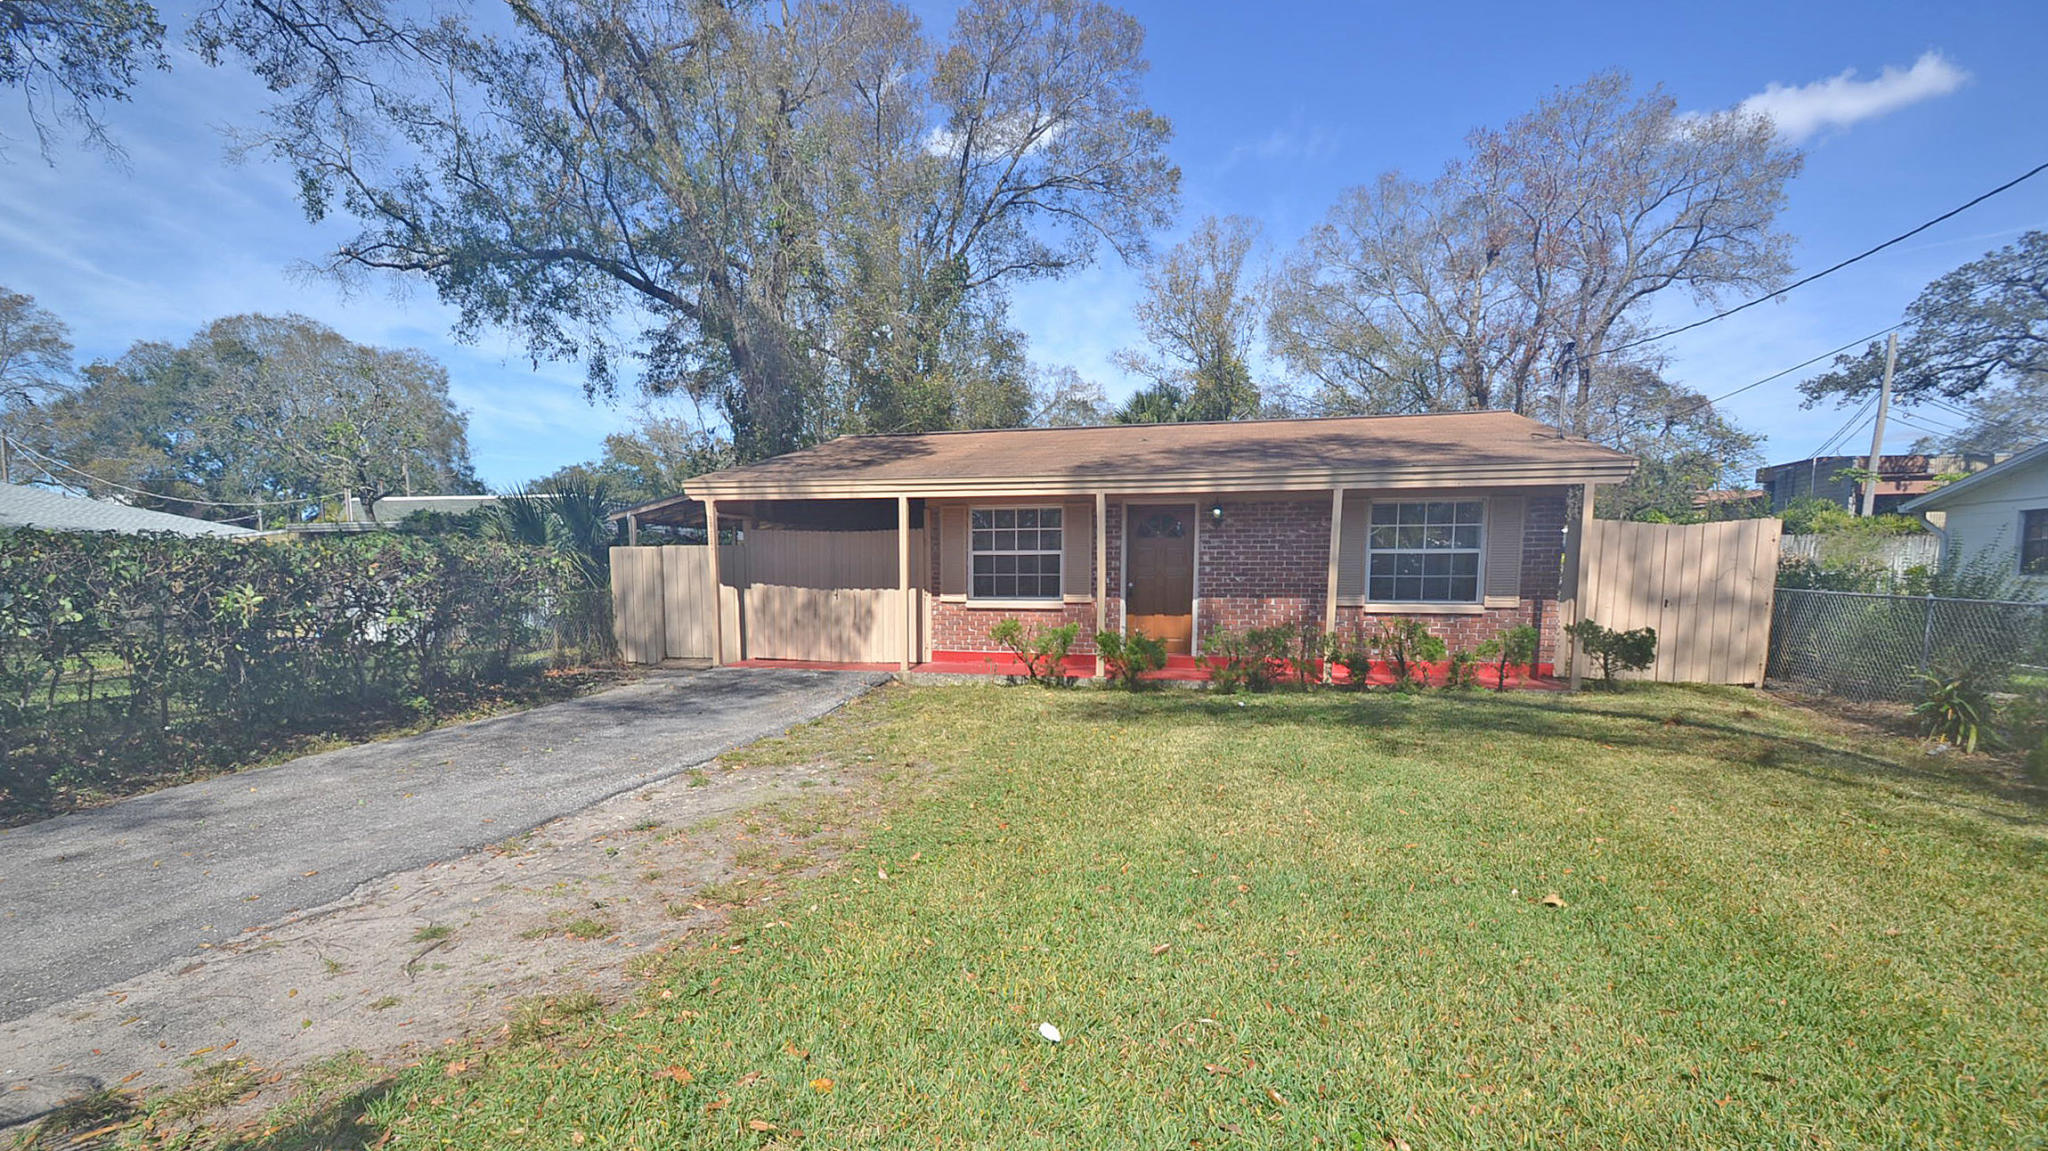 2707 w elm st for rent tampa fl trulia